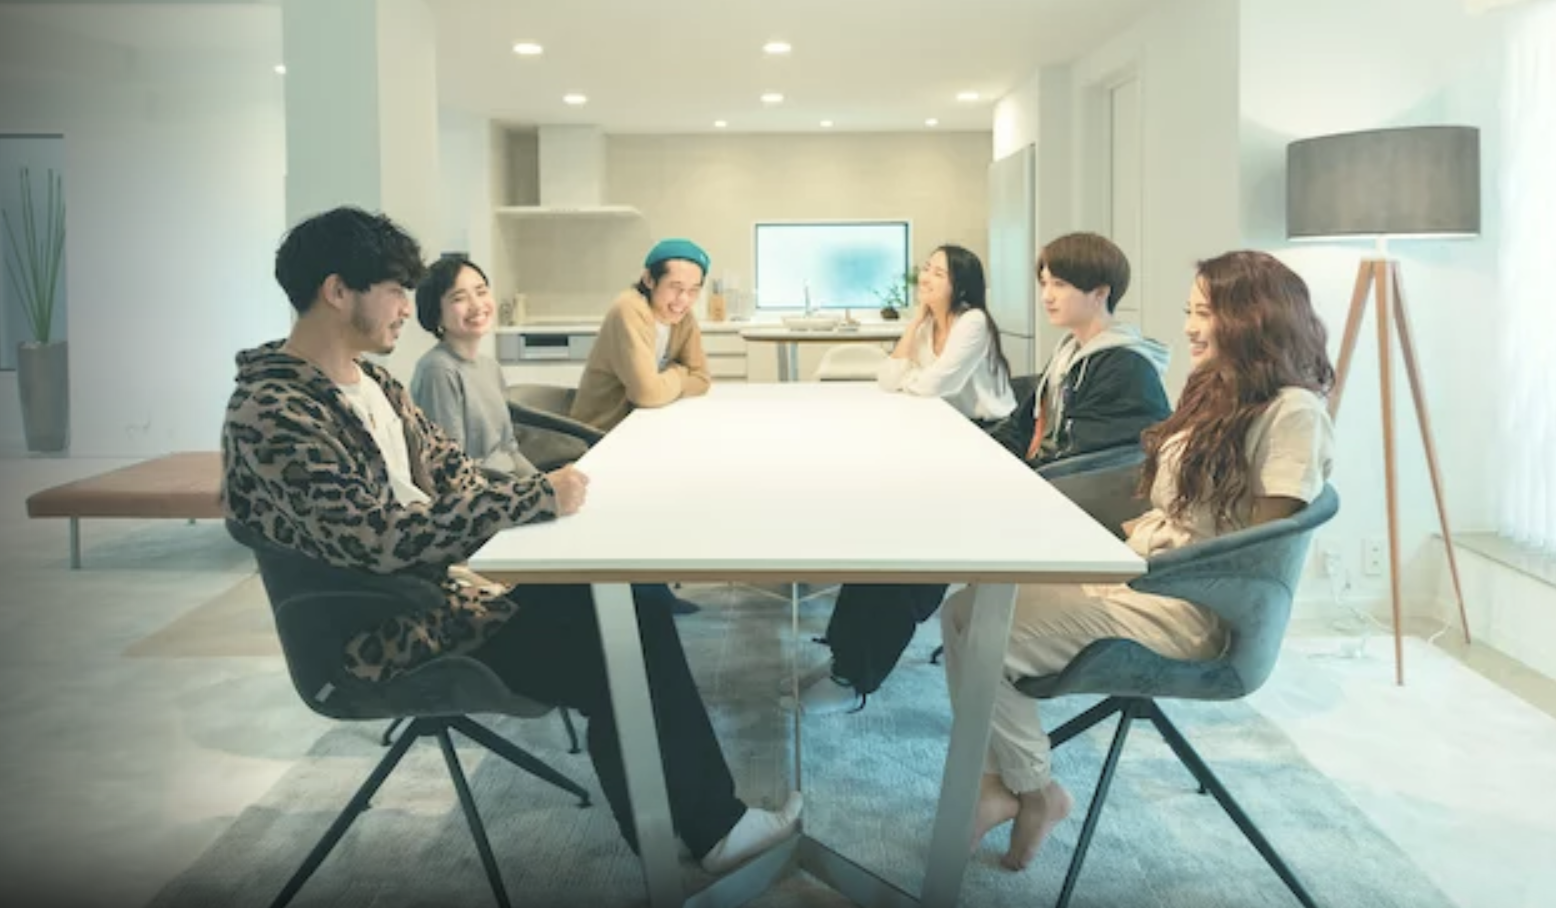 The cast of Terrace House gathered around the table.